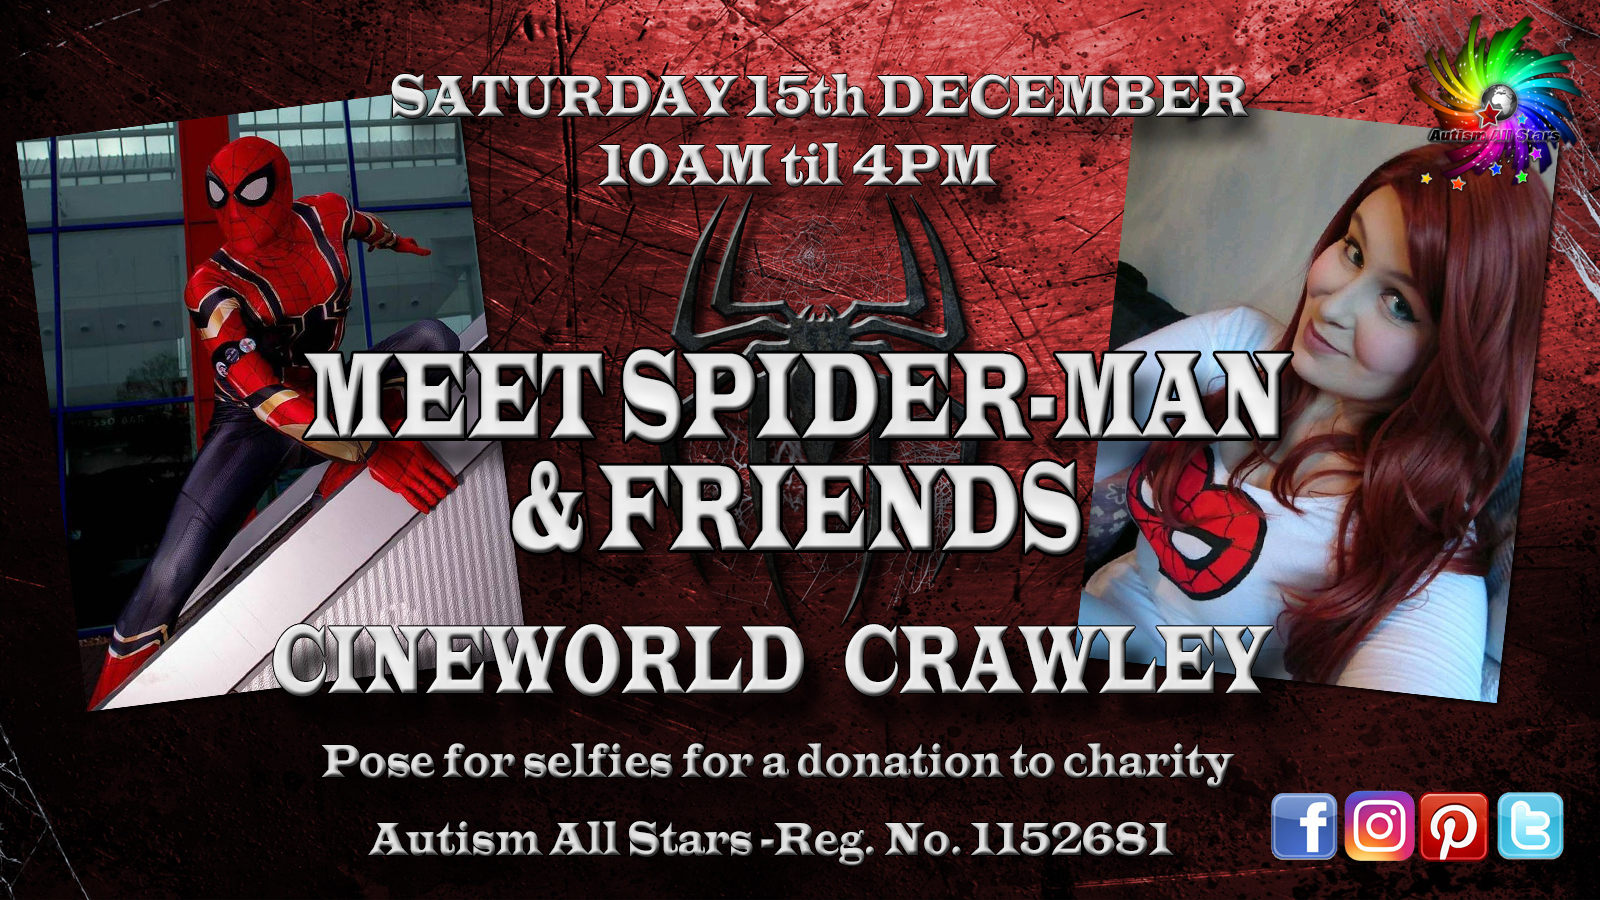 Aspergers, autism, Autism All Stars, autism awareness, characters, charity, cinema, Cineworld, cosplay, diversity, events, sussex, crawley, west sussex, Spider-Man